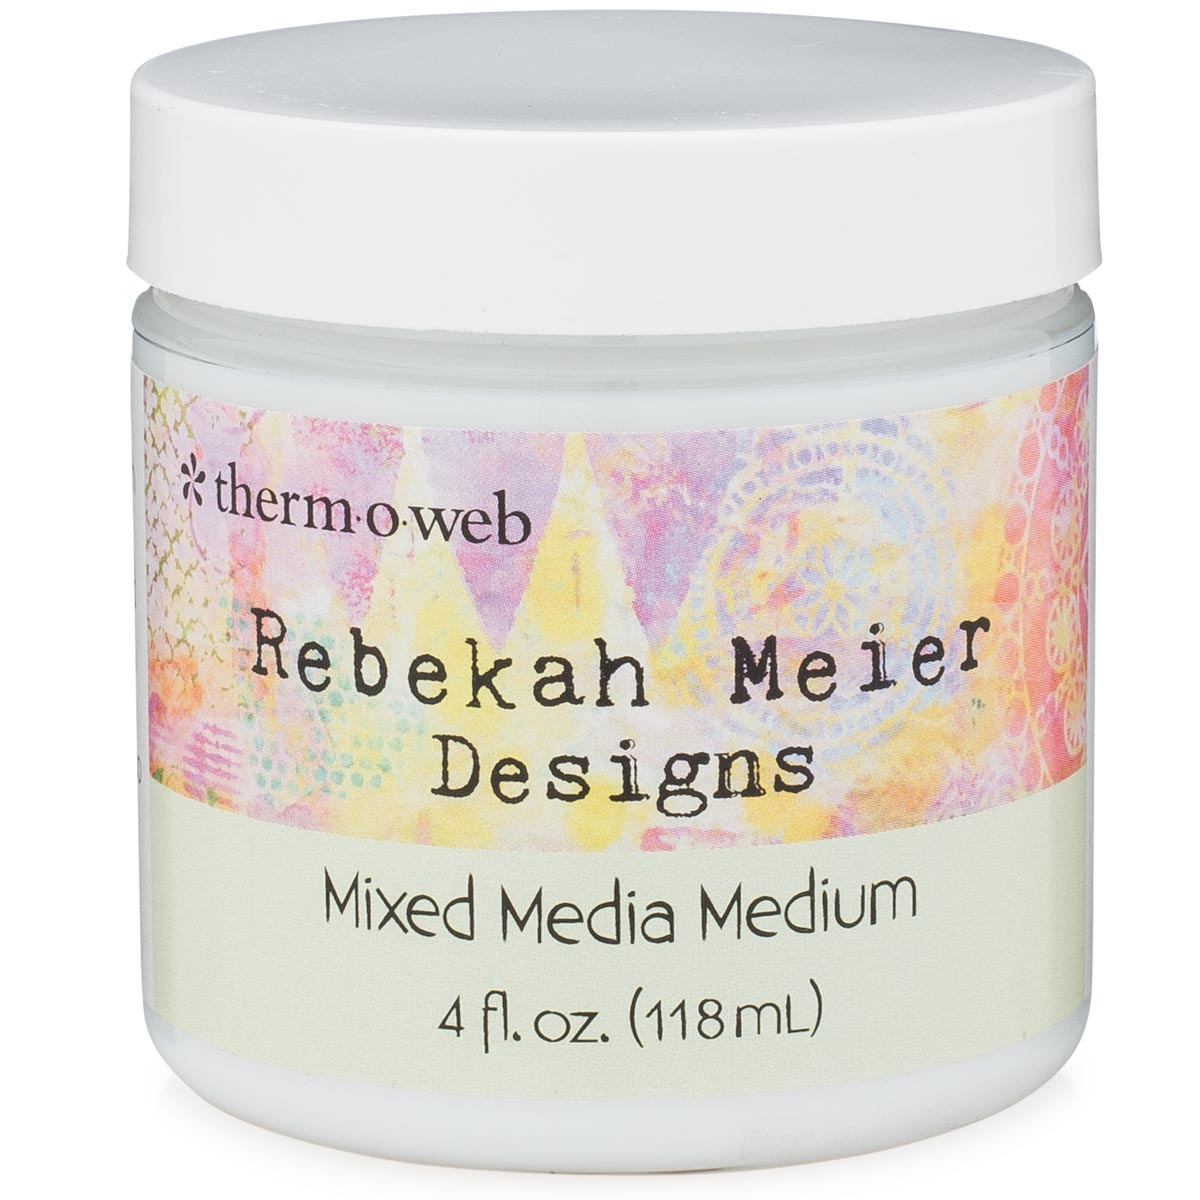 Rebekah Meier Wholesale -  Mixed Media Medium Jar 4 fl oz (118ml)